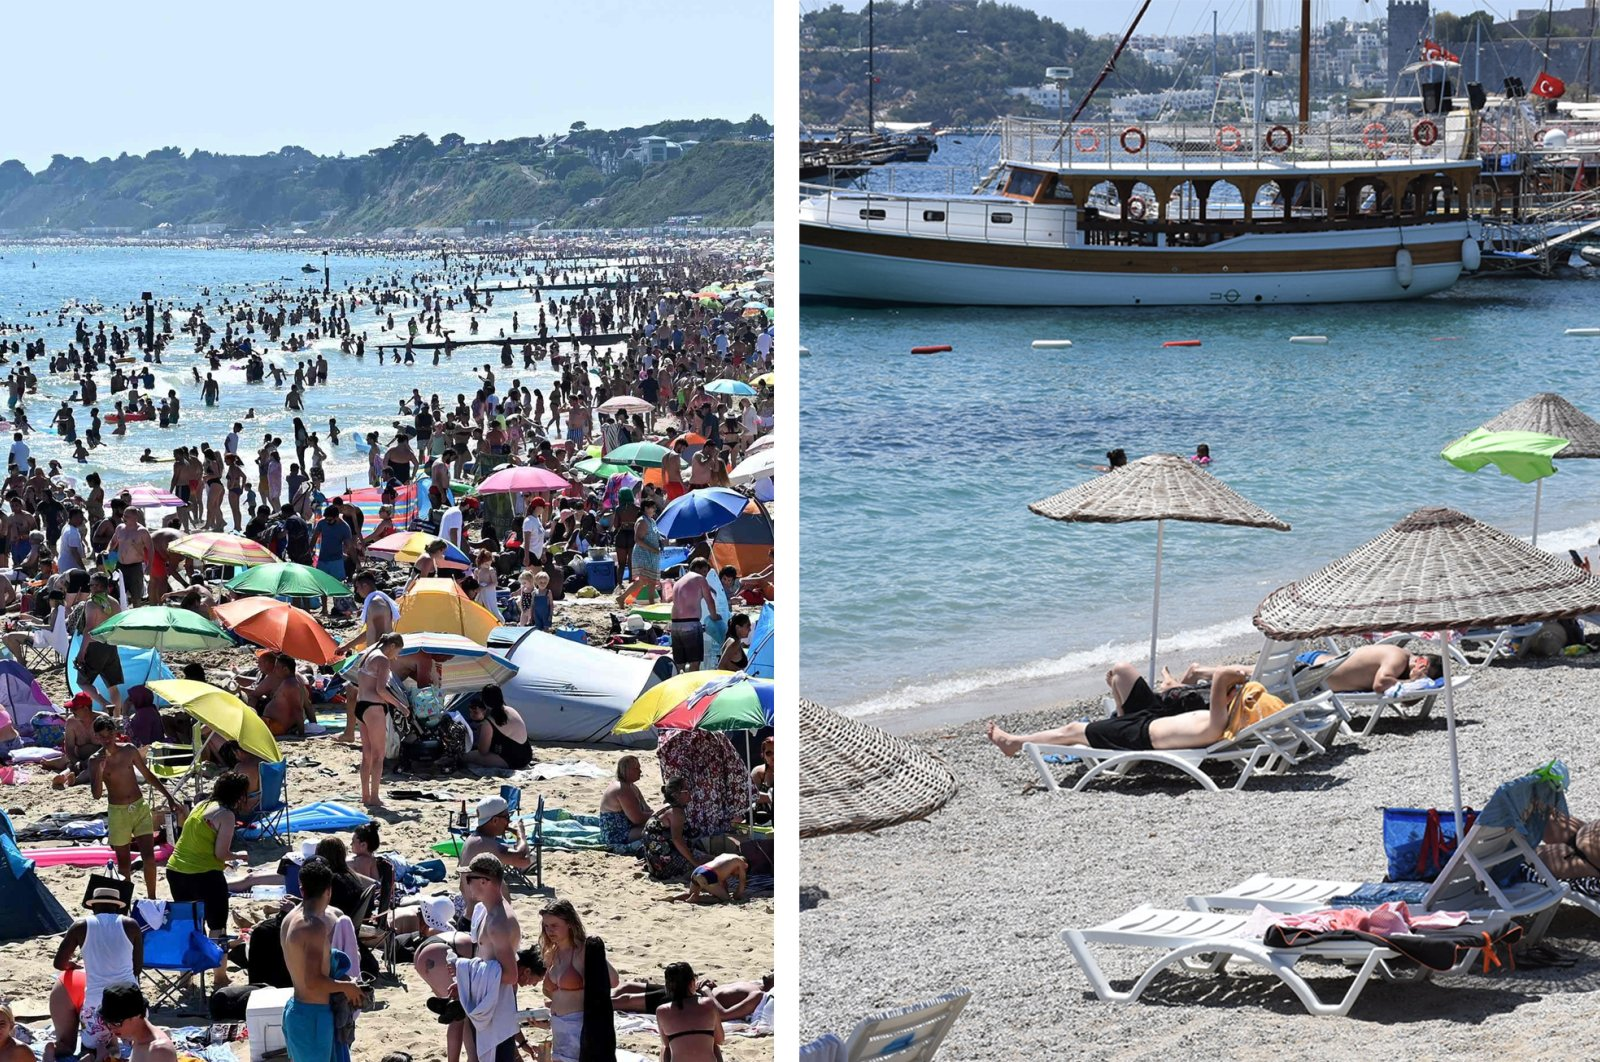 As the tourism season starts to begin, the stark difference between the beaches of Turkey and the U.K., in terms of the social distancing, draws major attention in social media. (PHOTOS BY AFP-AA)